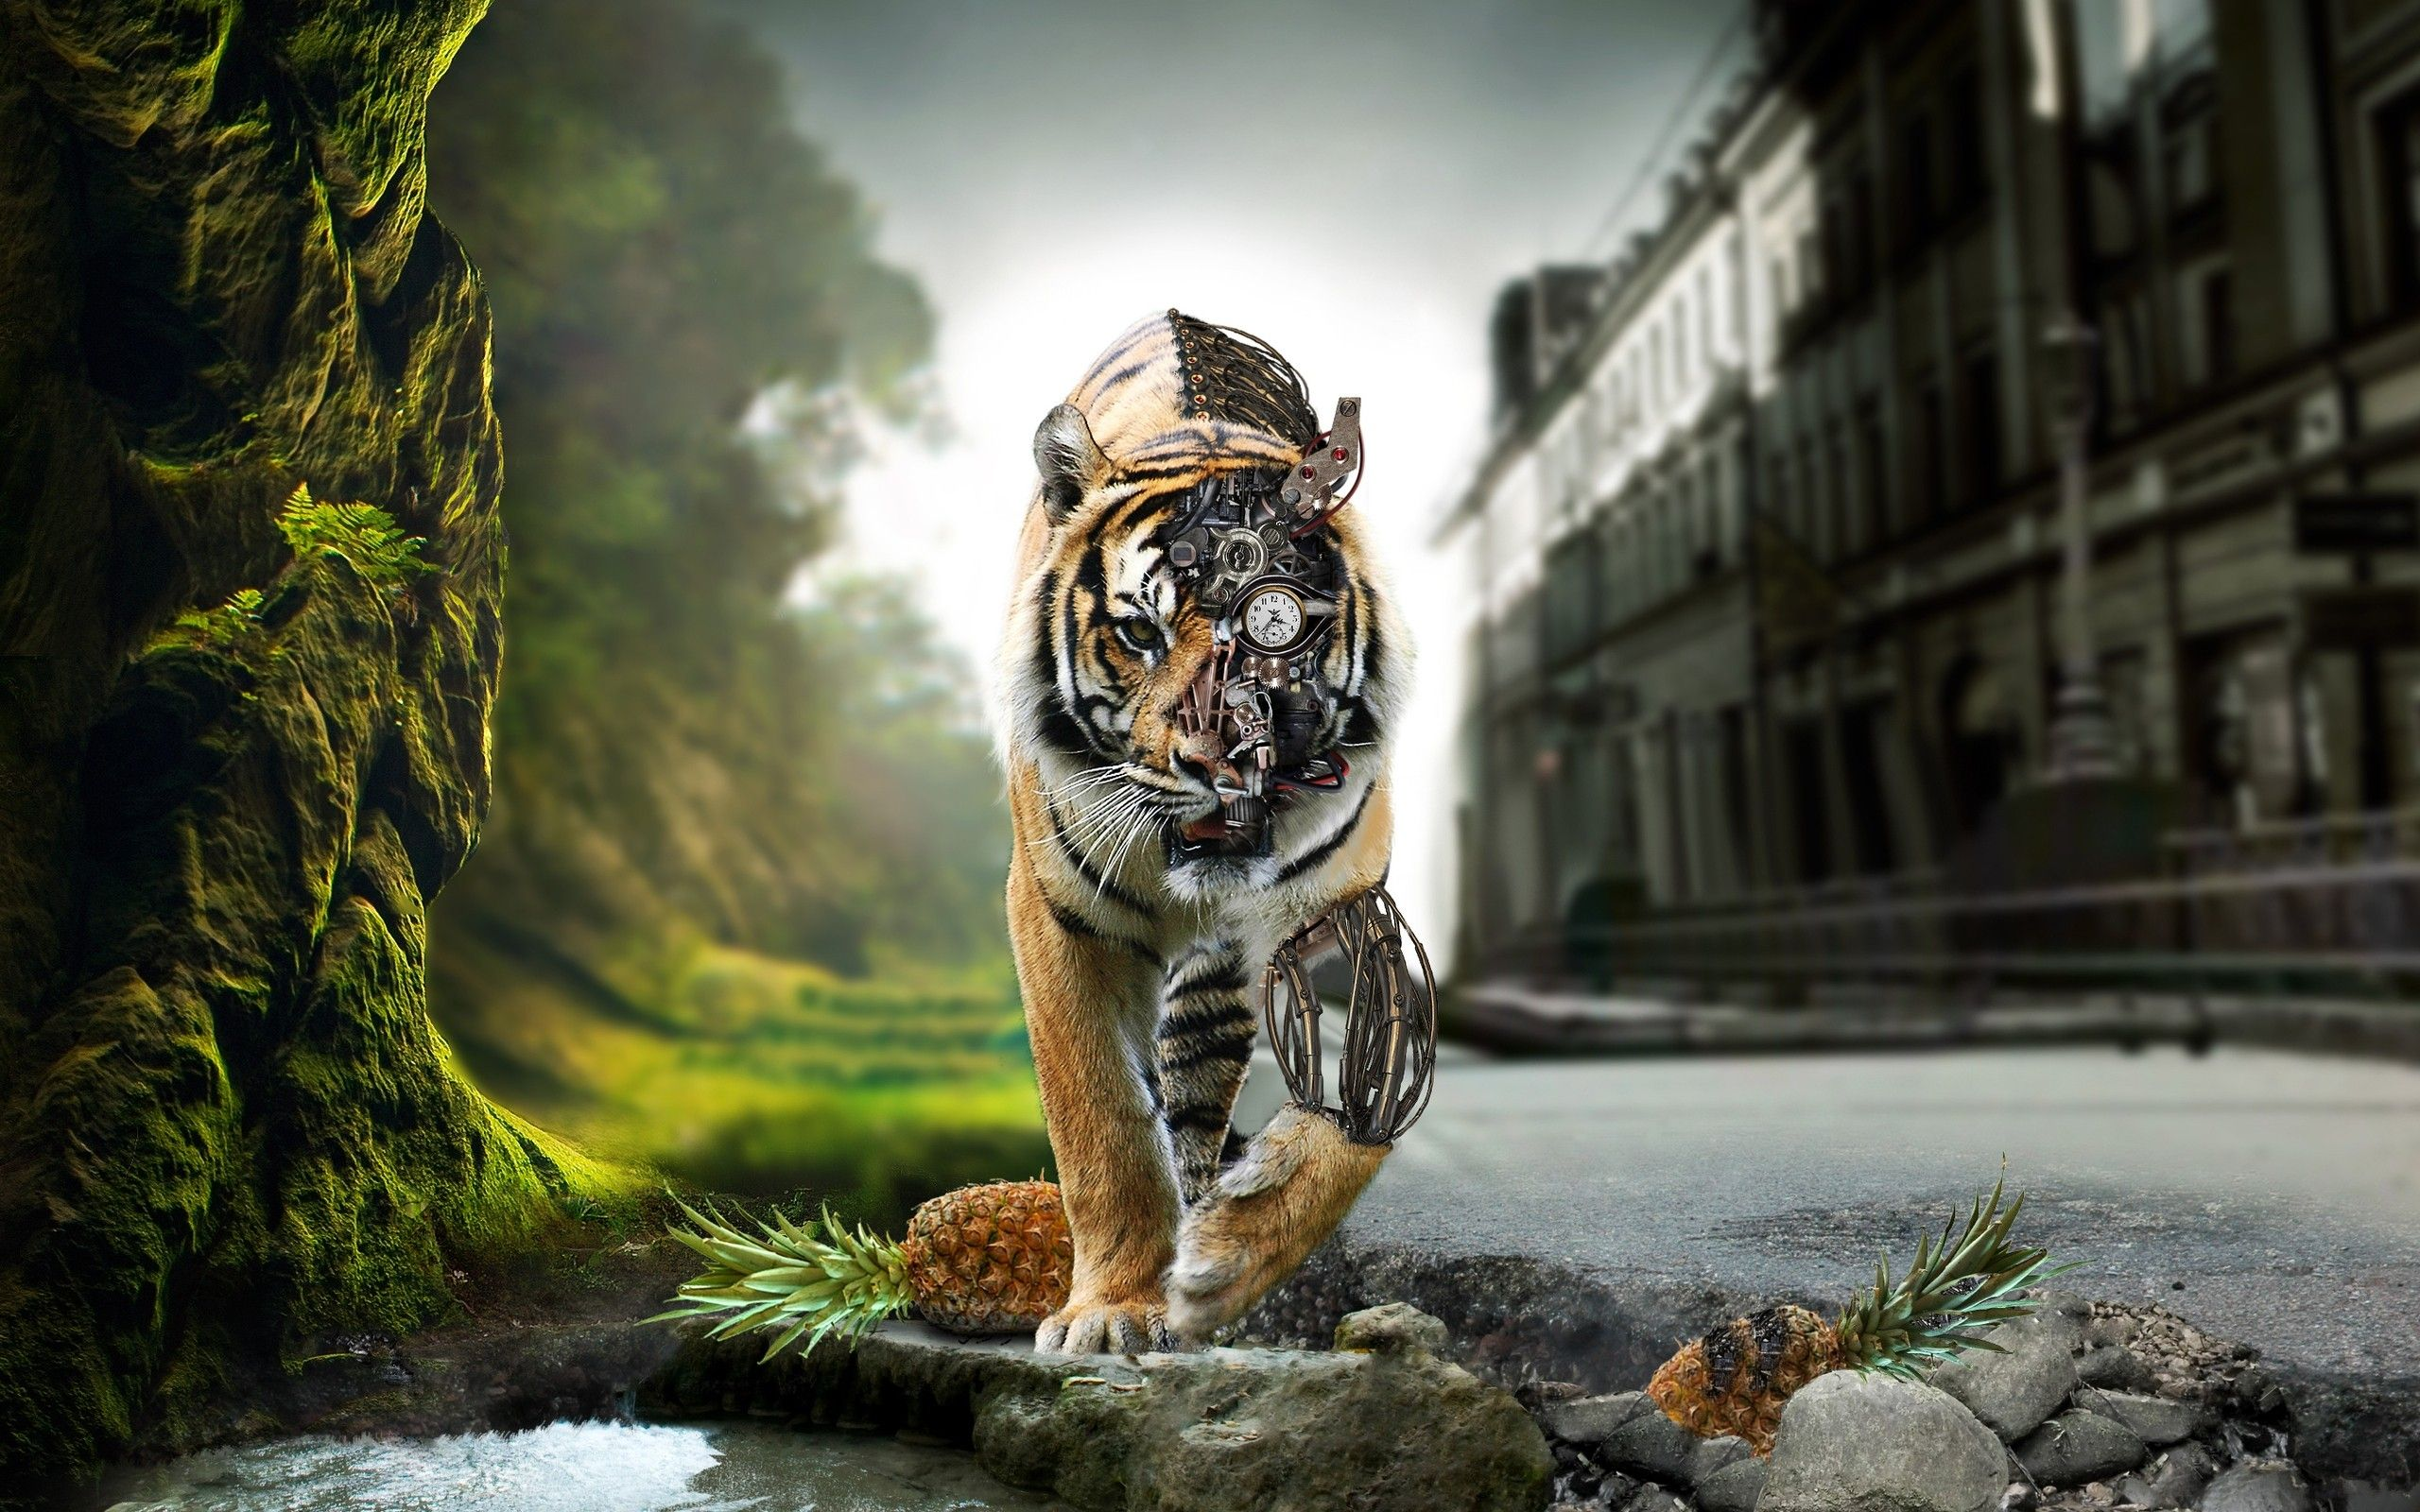 the amazing tigers hd wallpapers & pictures at http://www